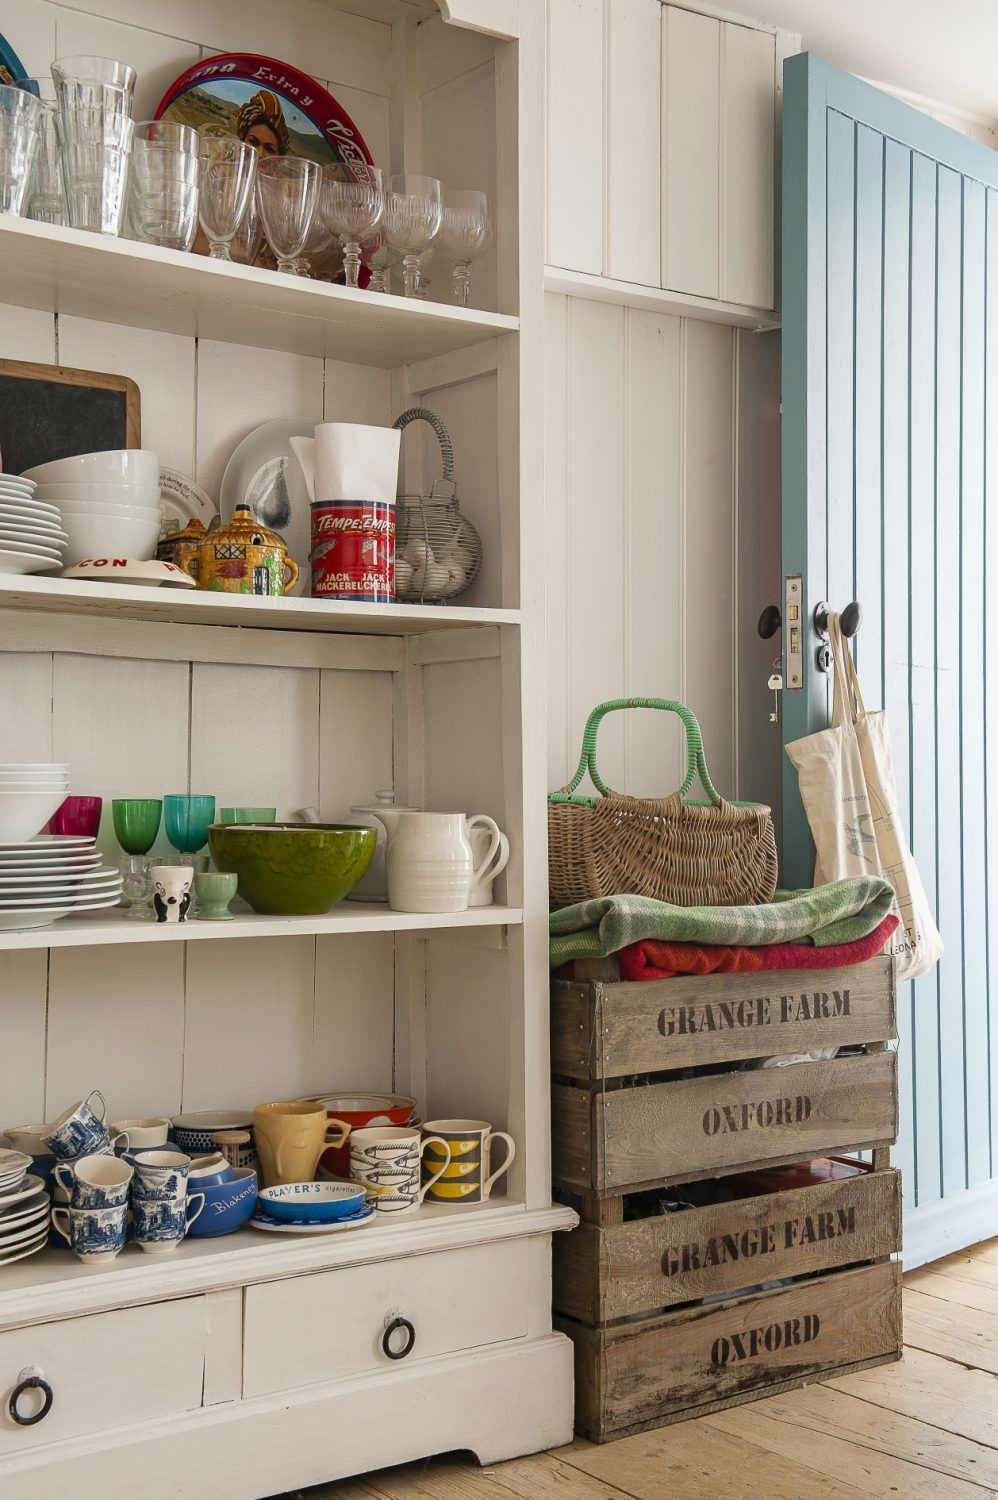 This includes the rack of wooden shelves by Garden Trading and everything in them: enamel bowls and jugs of various sizes, vintage cups and saucers and cook books